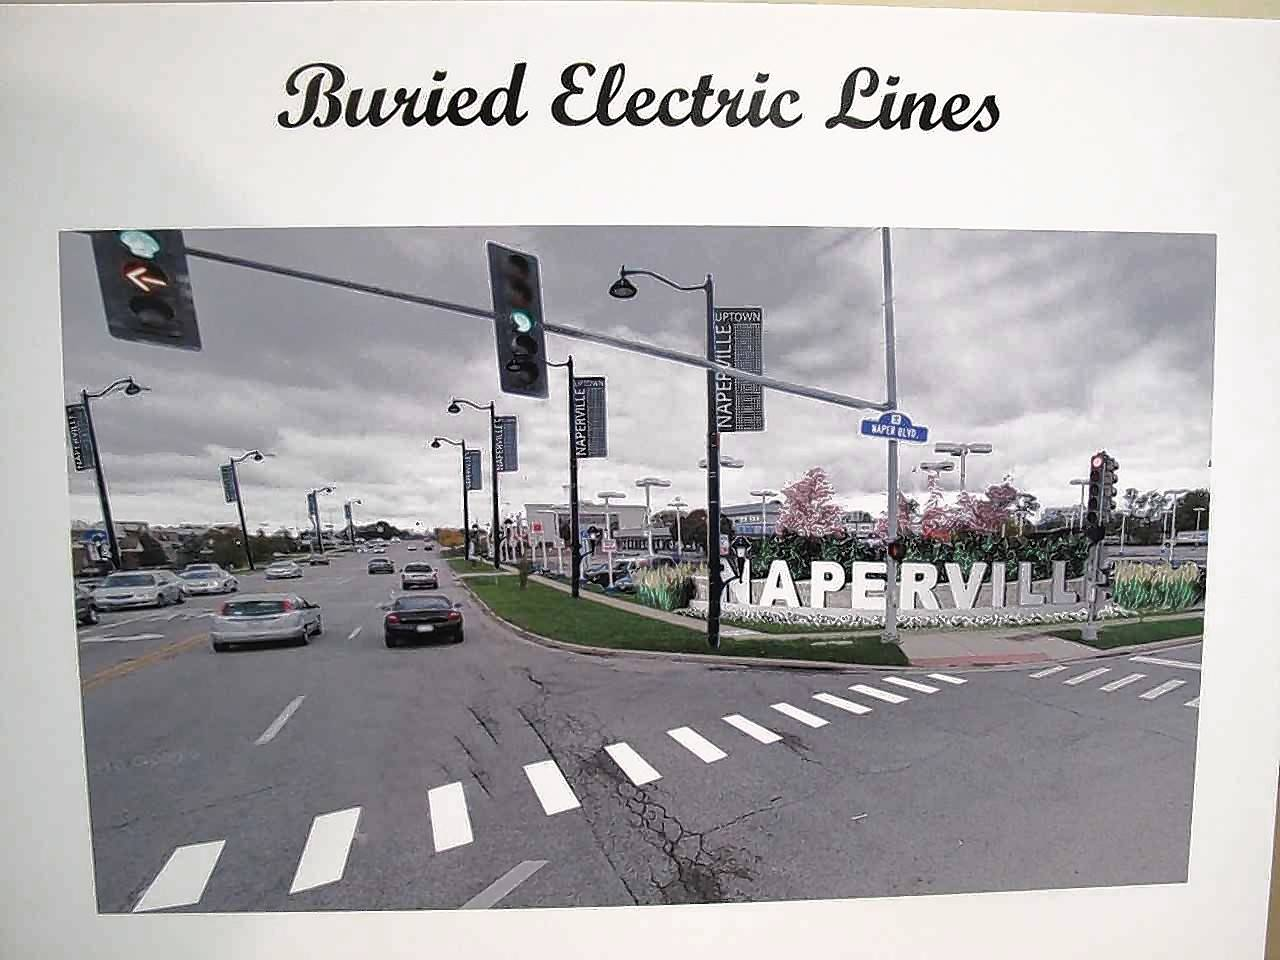 One of the highlights of streetscape rebranding improvements planned for east Ogden Avenue in Naperville would be burying ComEd electric and other utility lines to give the corridor a brighter, less cluttered appearance.